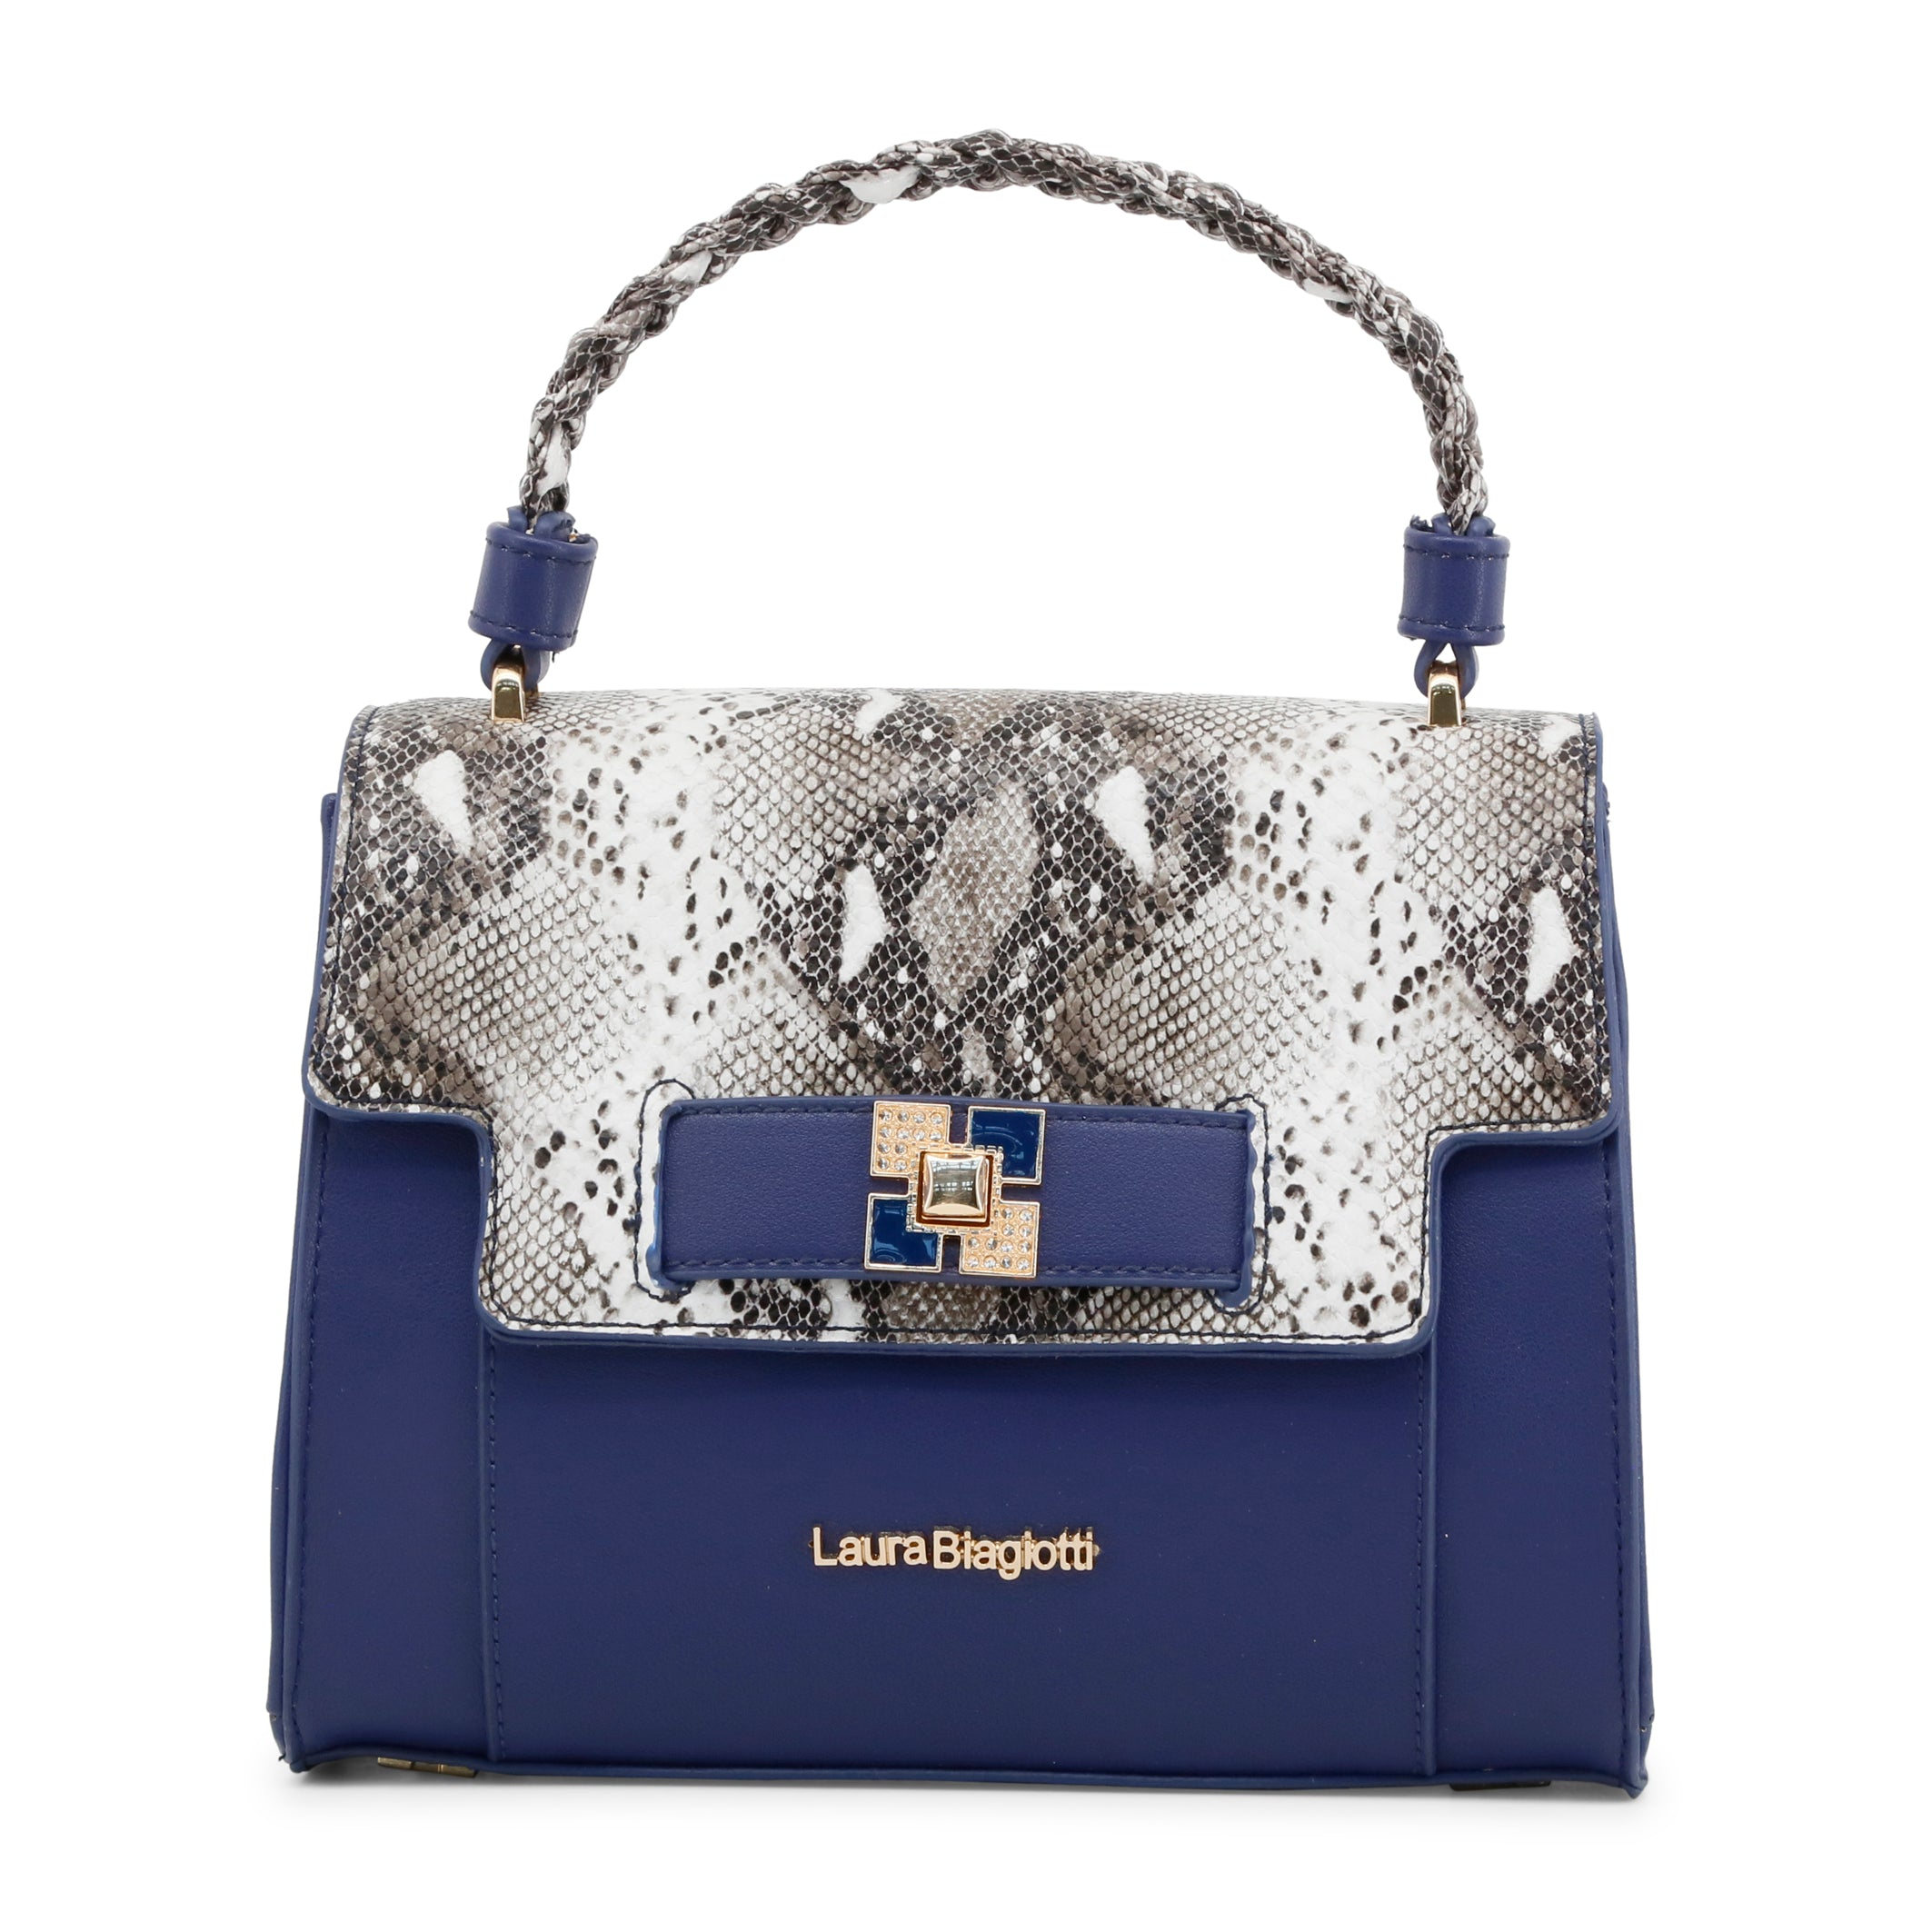 Laura Biagiotti Womens Handbags LB18S112-3